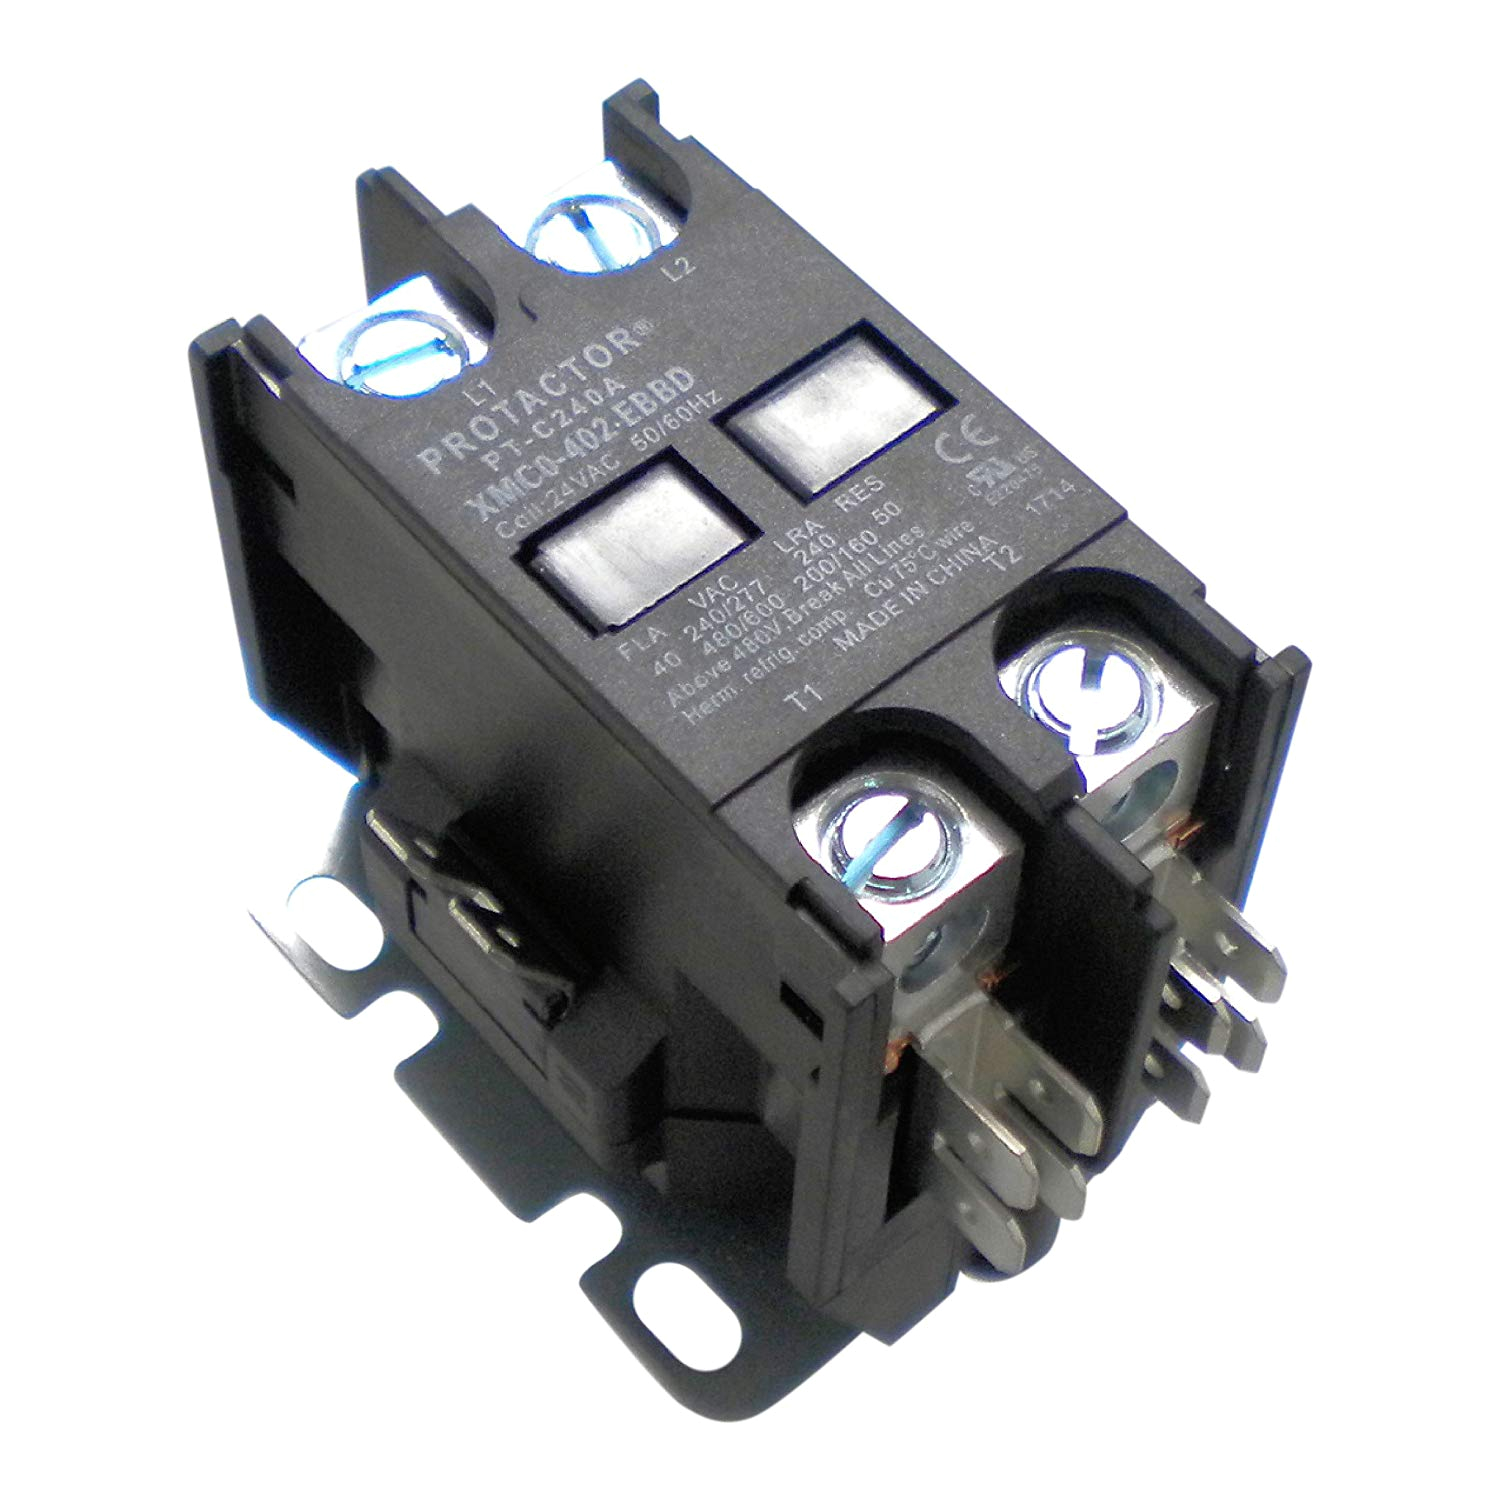 protactor 2 pole 40 amp heavy duty ac contactor replaces virtually all residential 2 pole models amazon com